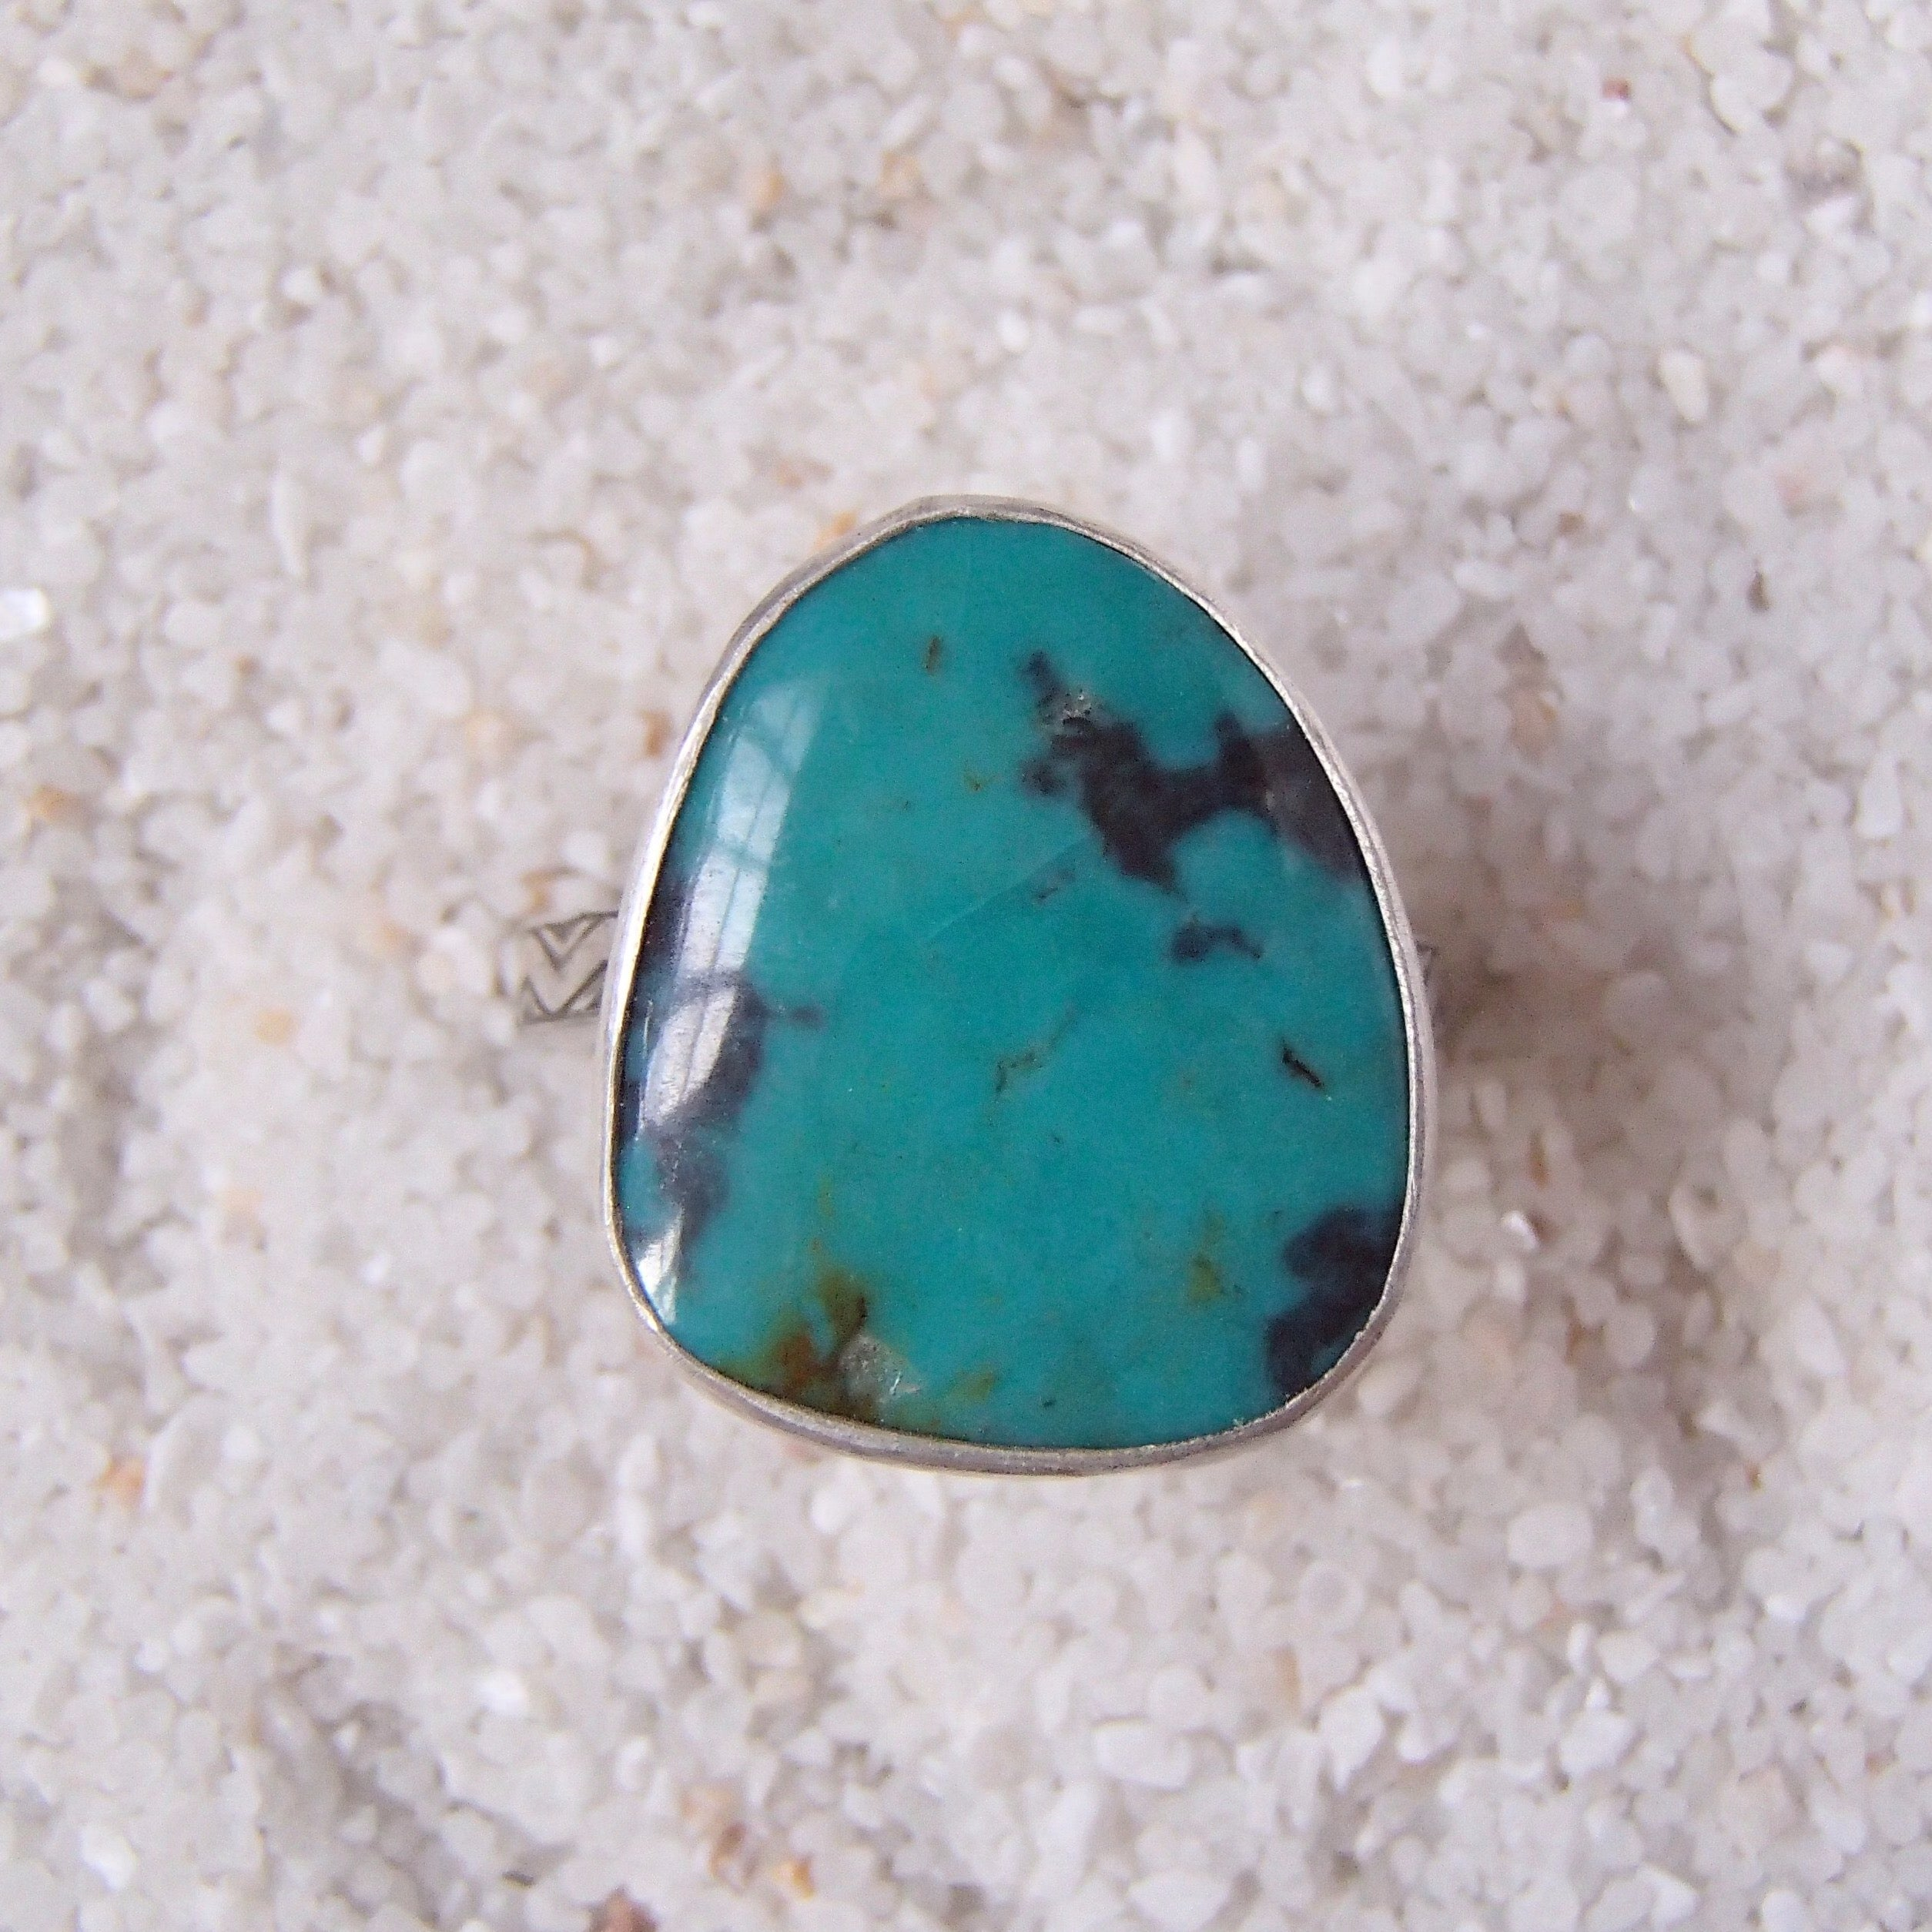 Turquoise Ring - Size 6.5